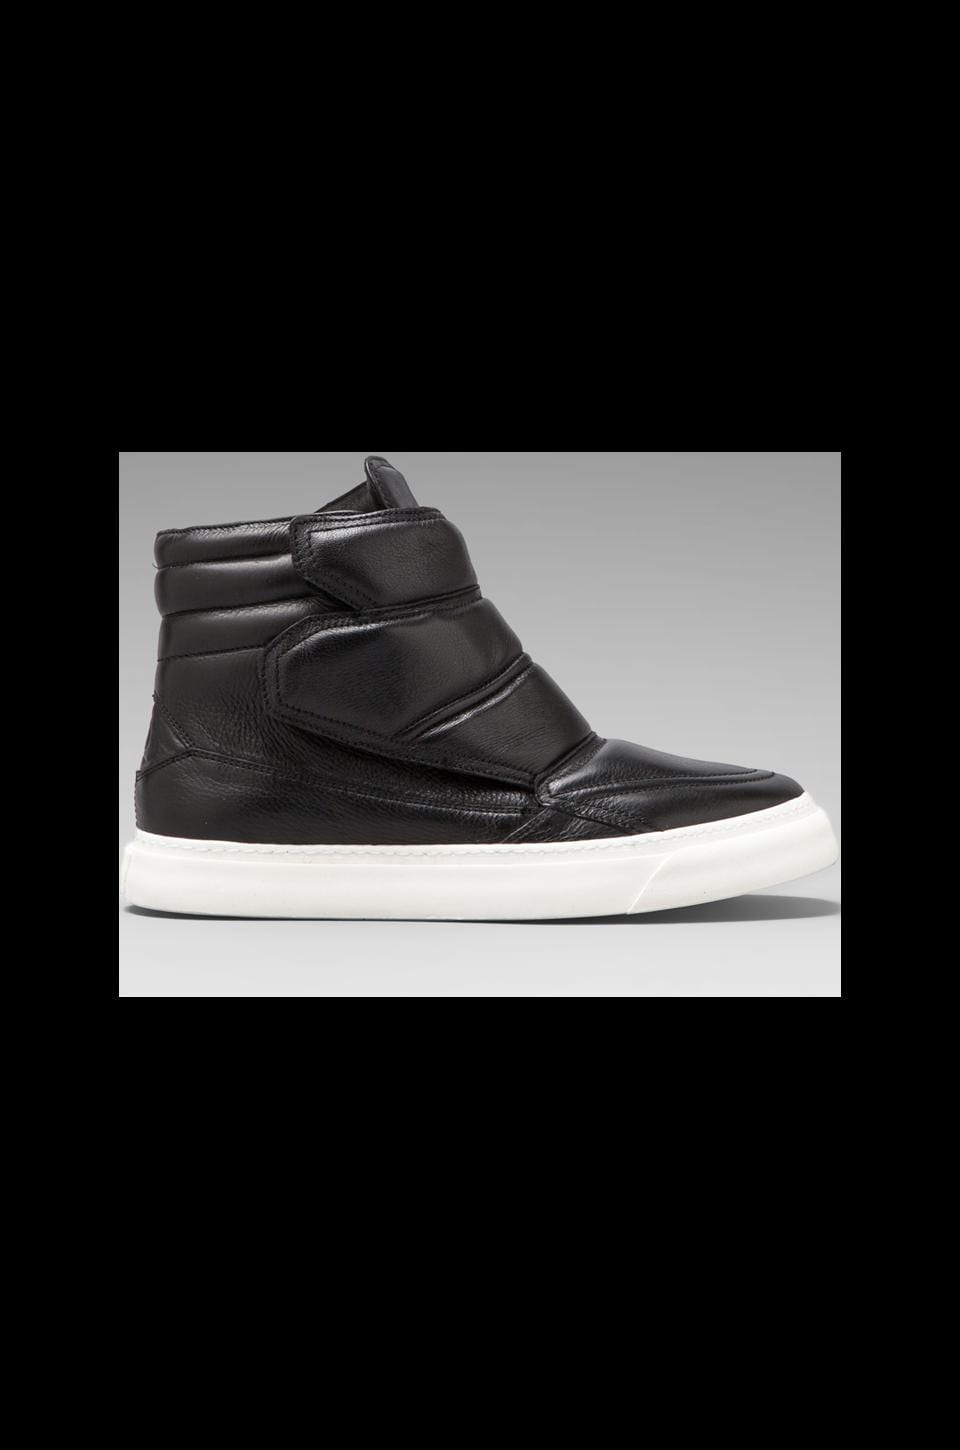 McQ Alexander McQueen New Sneaker in Black